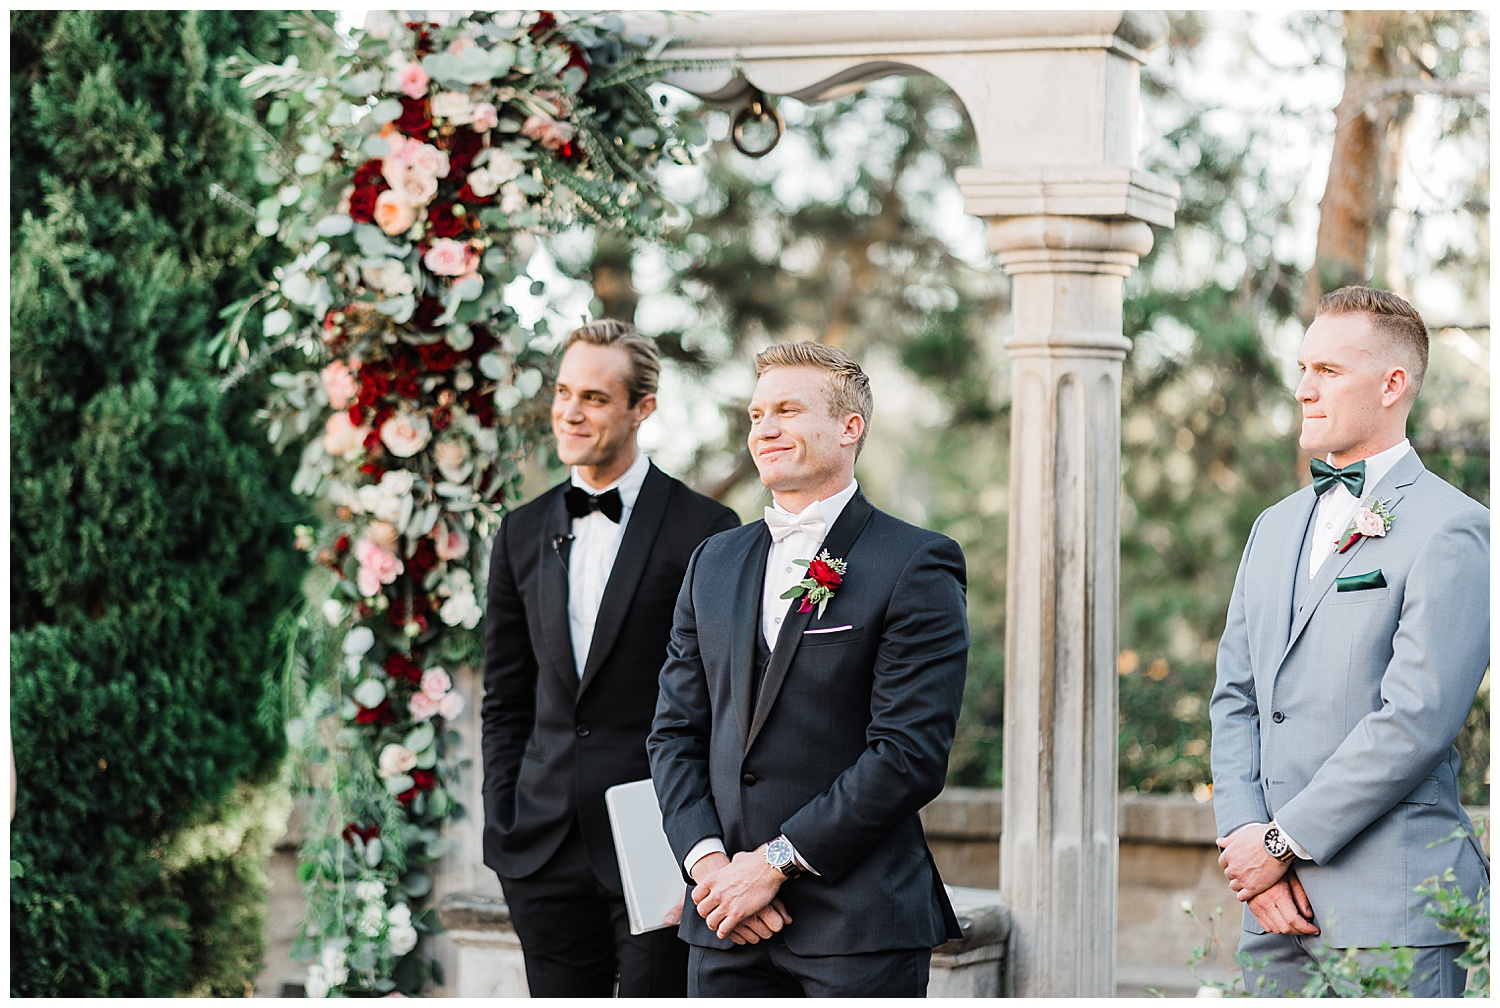 balboa-park-wedding-ceremony-groom-seeing-bride-for-first-time.jpg